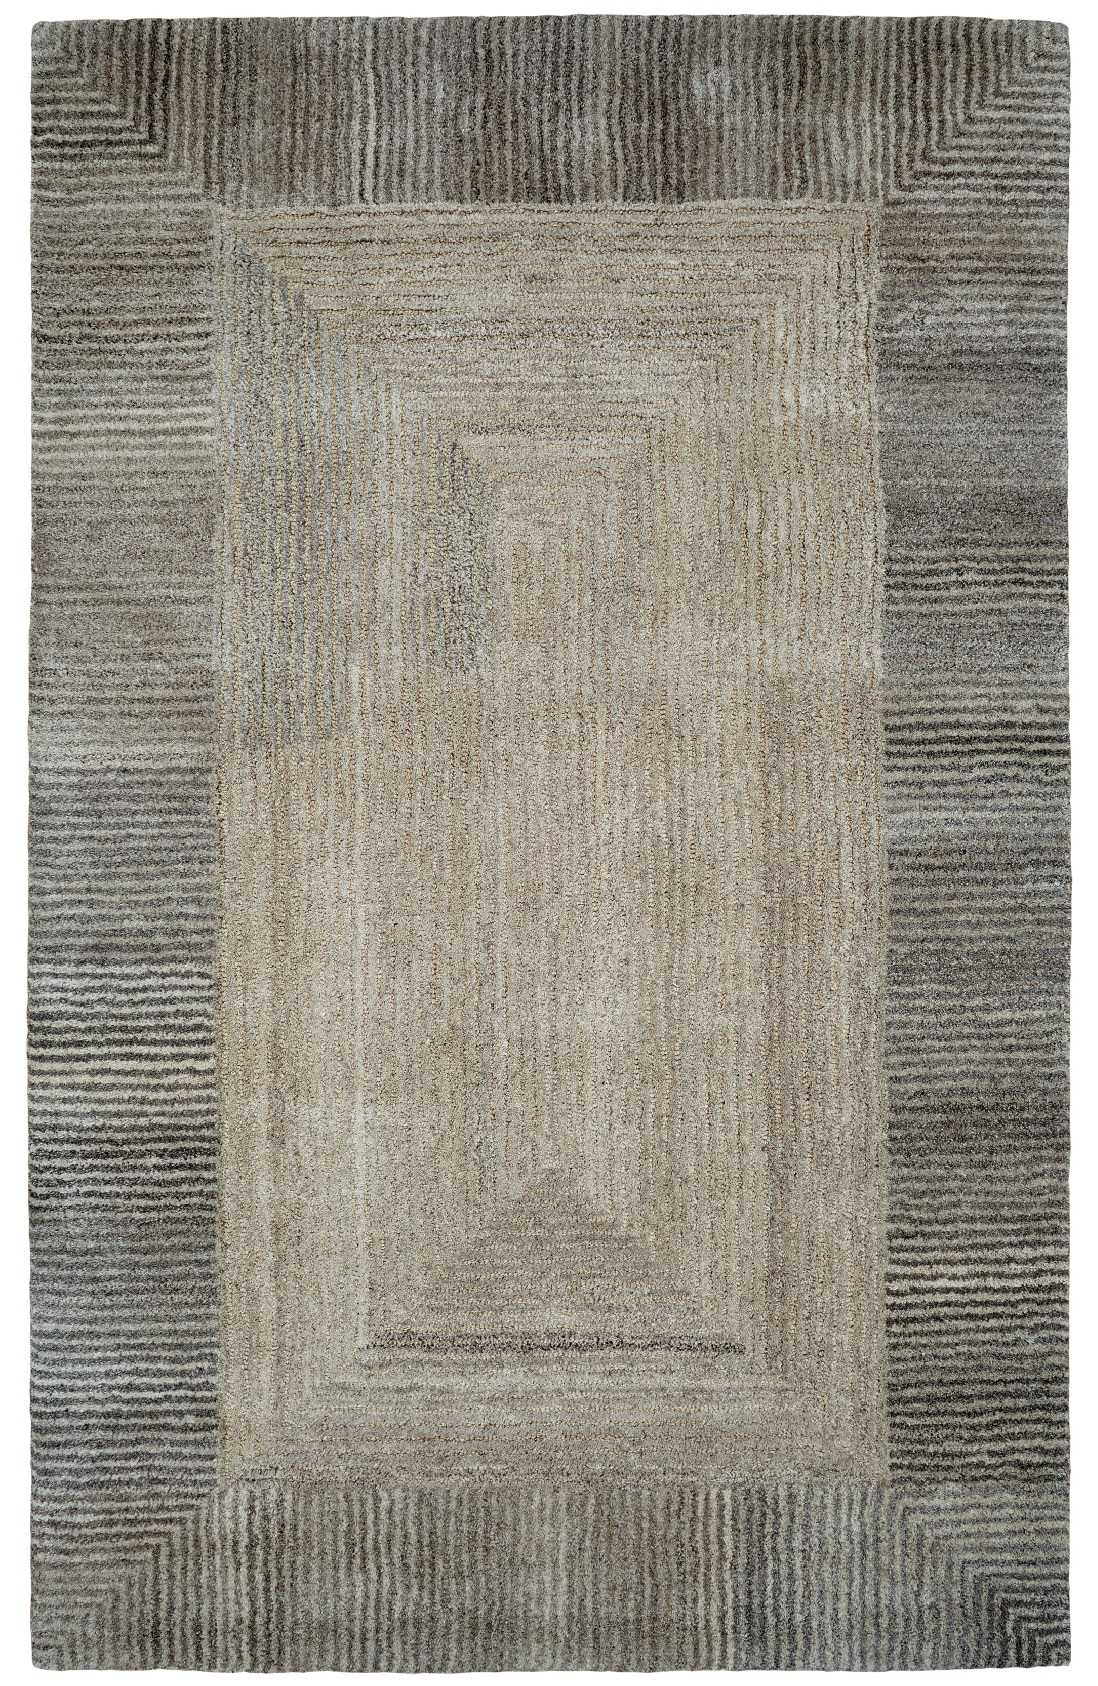 Dynamic Rugs Posh Geometric Grey 7810 Area Rug